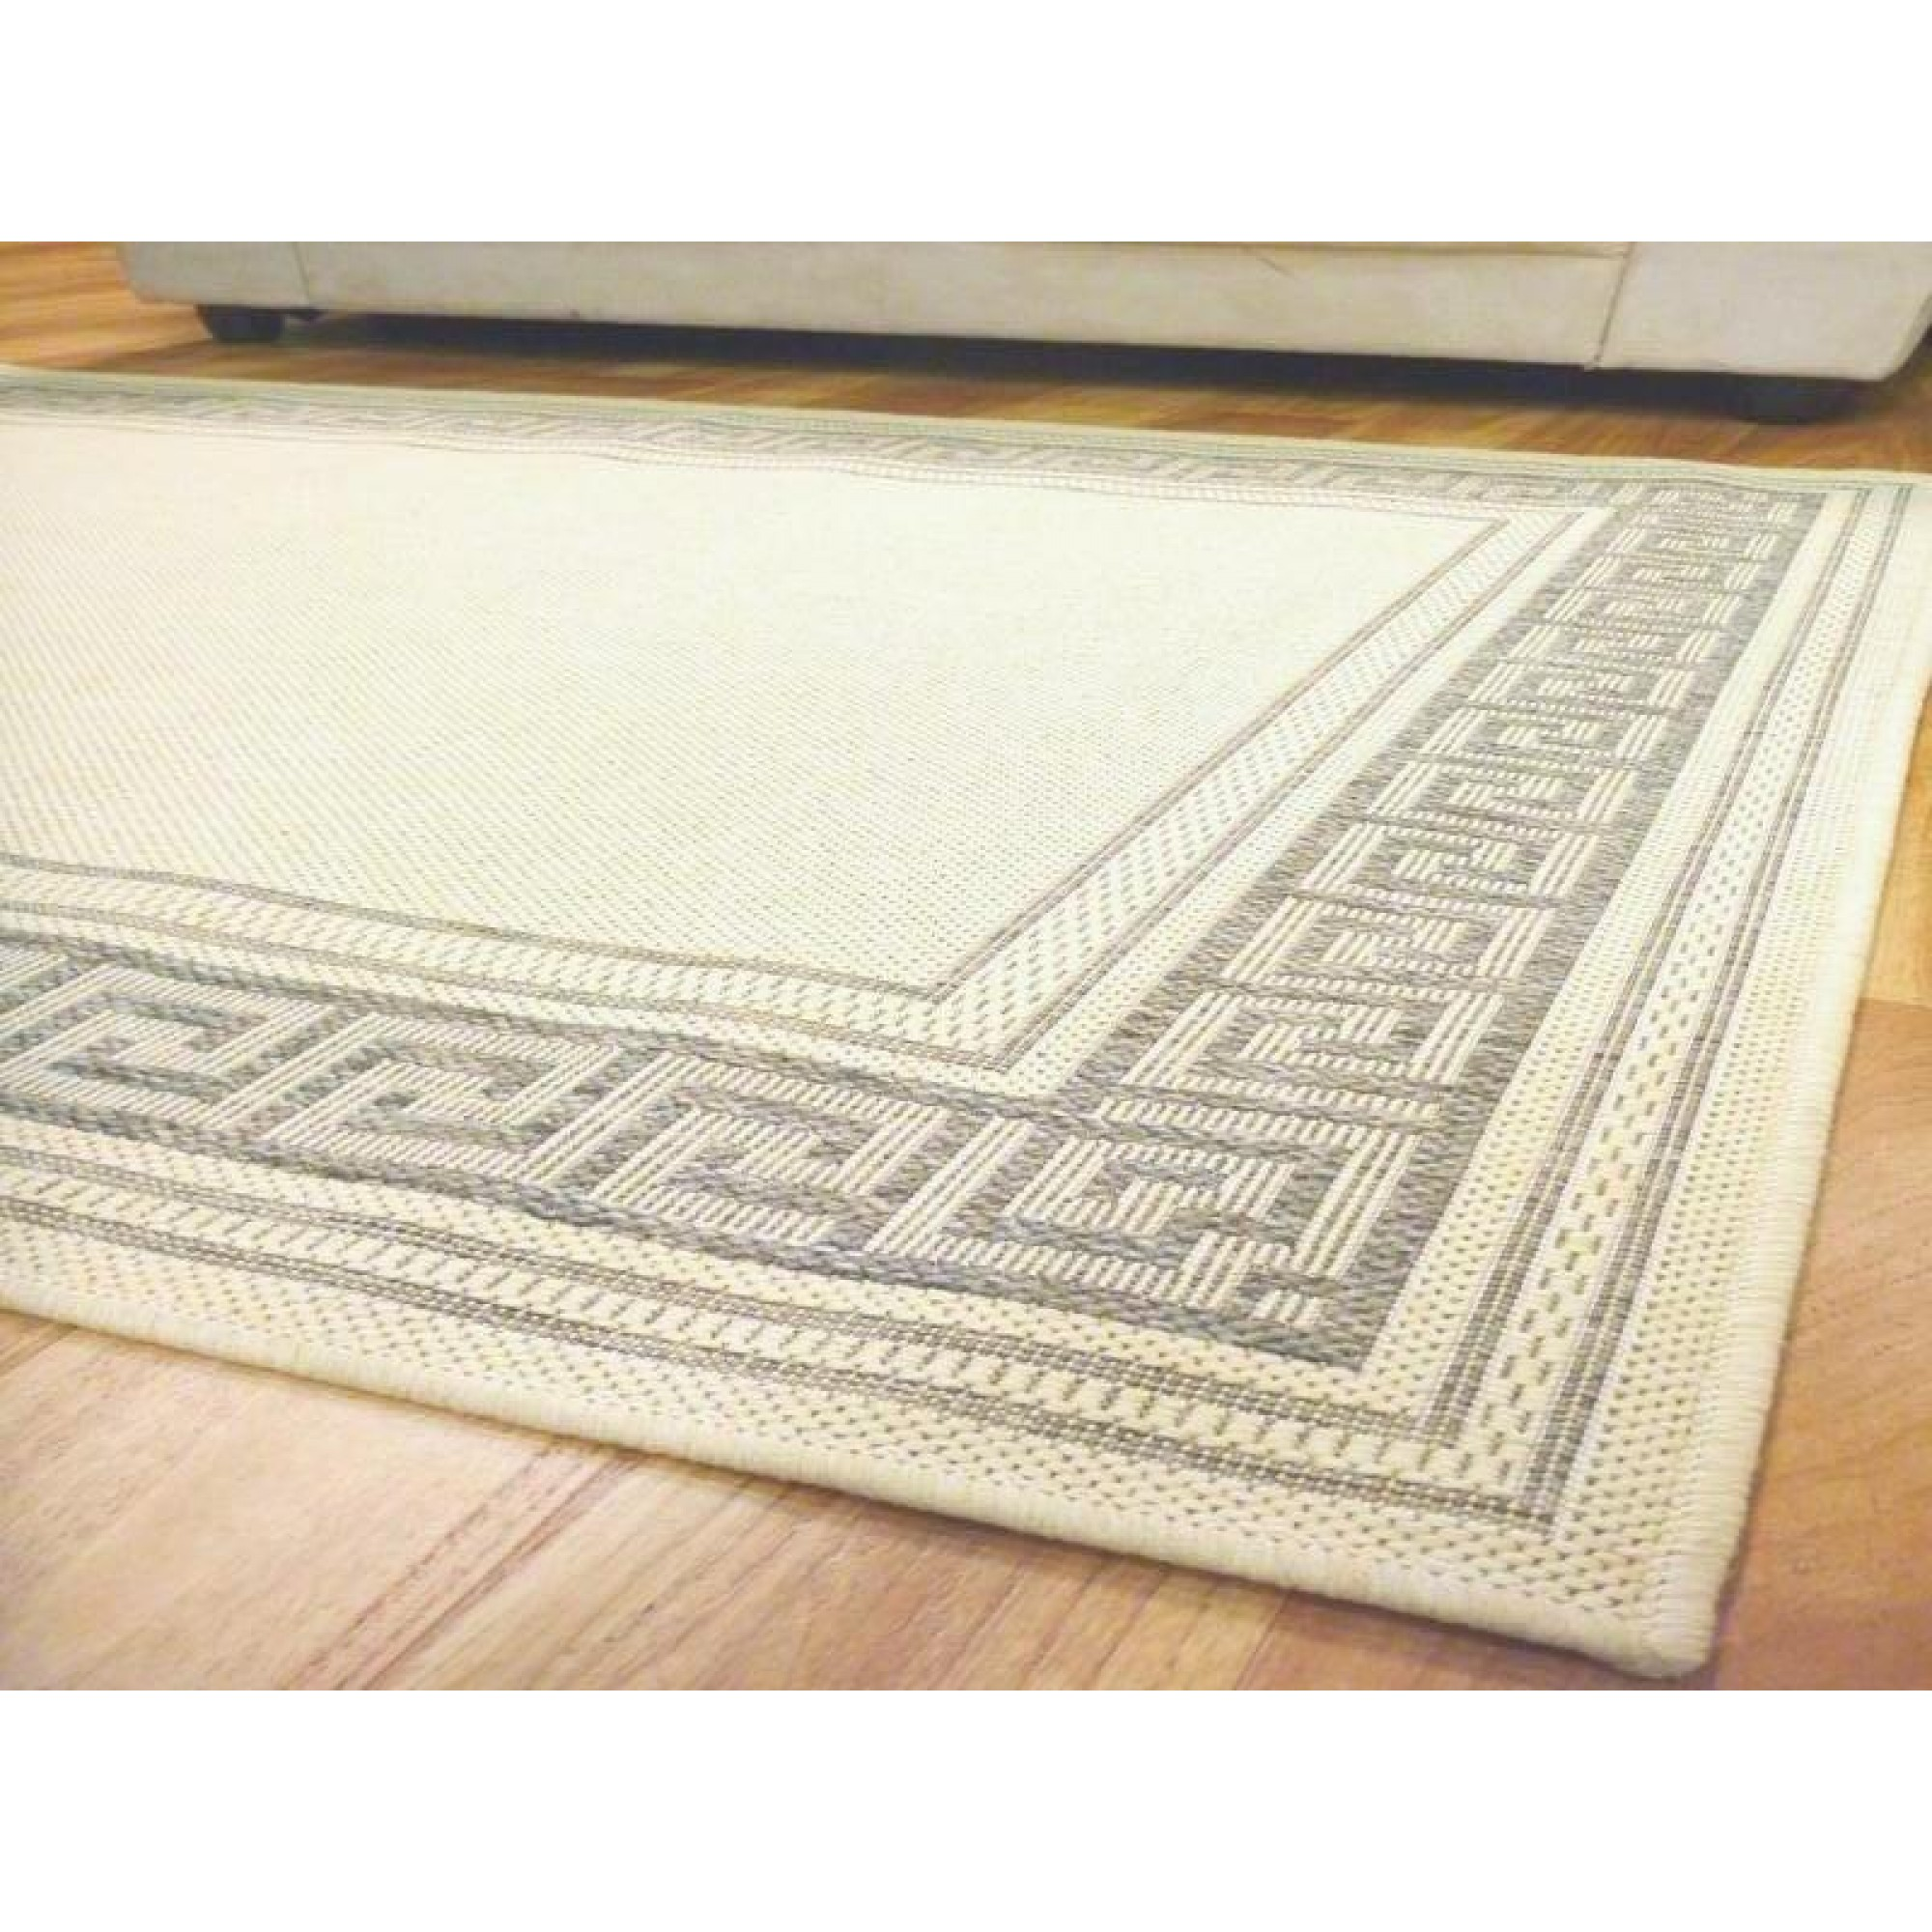 Sisal Teppich Ikea Osted Cool Good Tapis Corde Ikea Tapis En Sisal Ikea Wonderful